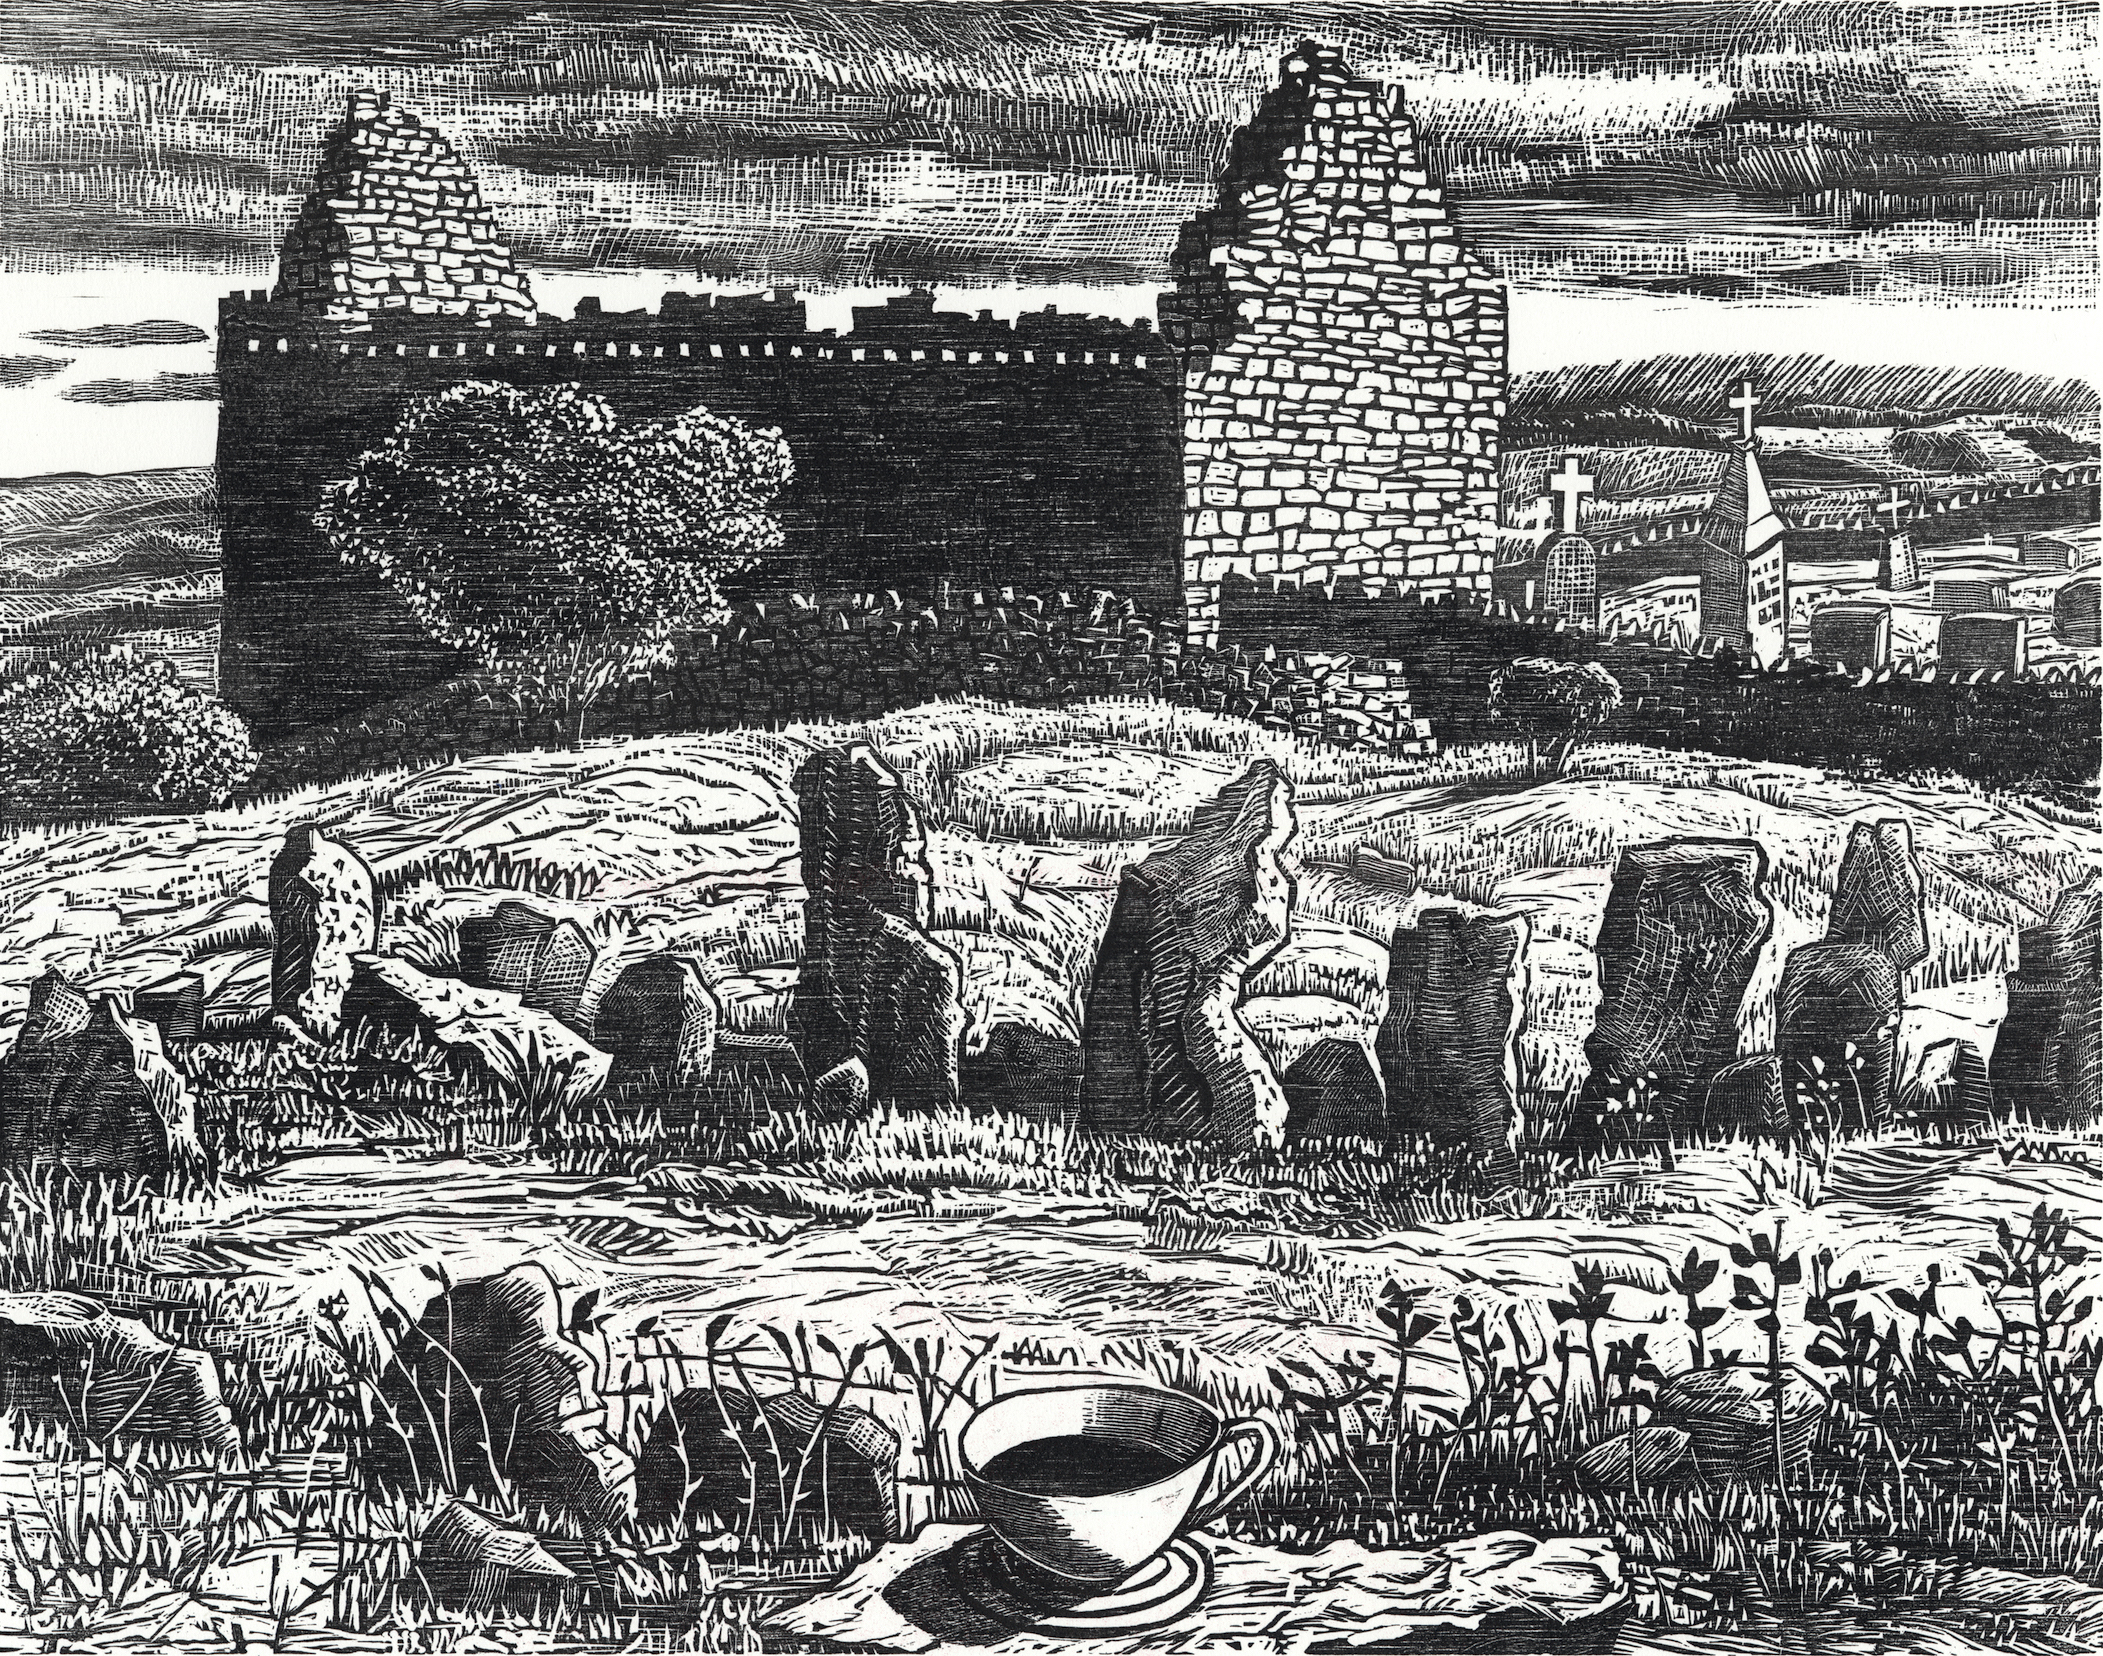 Stone Circle and Ruined Church   (b/w edition), 2018  Woodcut, 18x15""